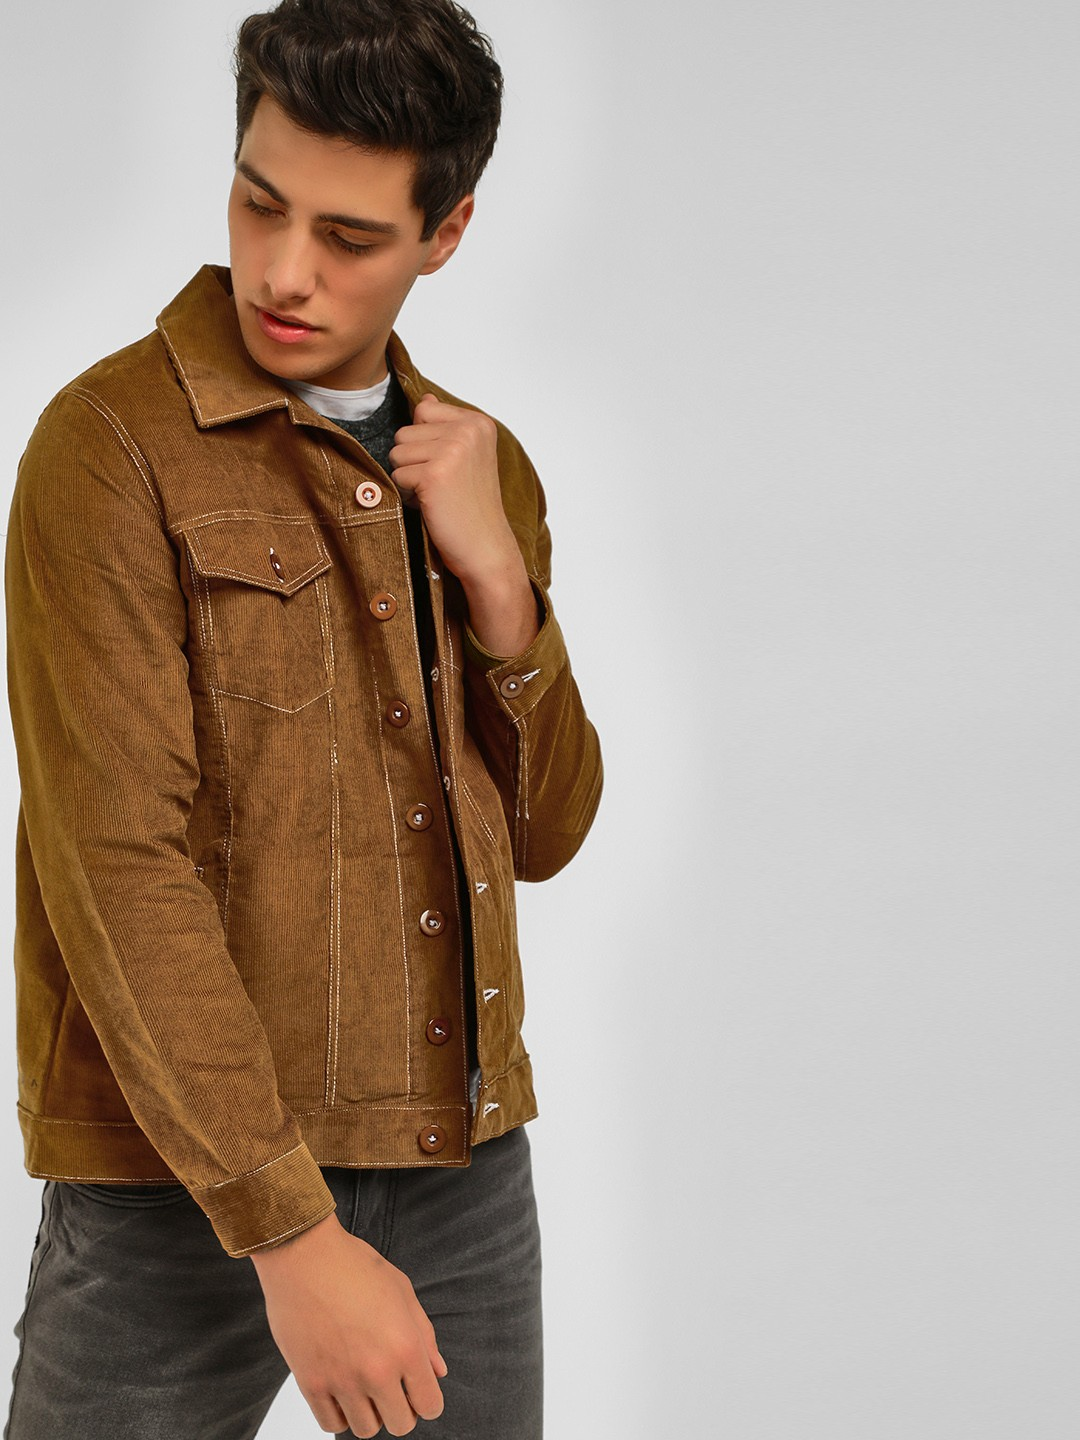 Spring Break Tan Corduroy Trucker Jacket 1